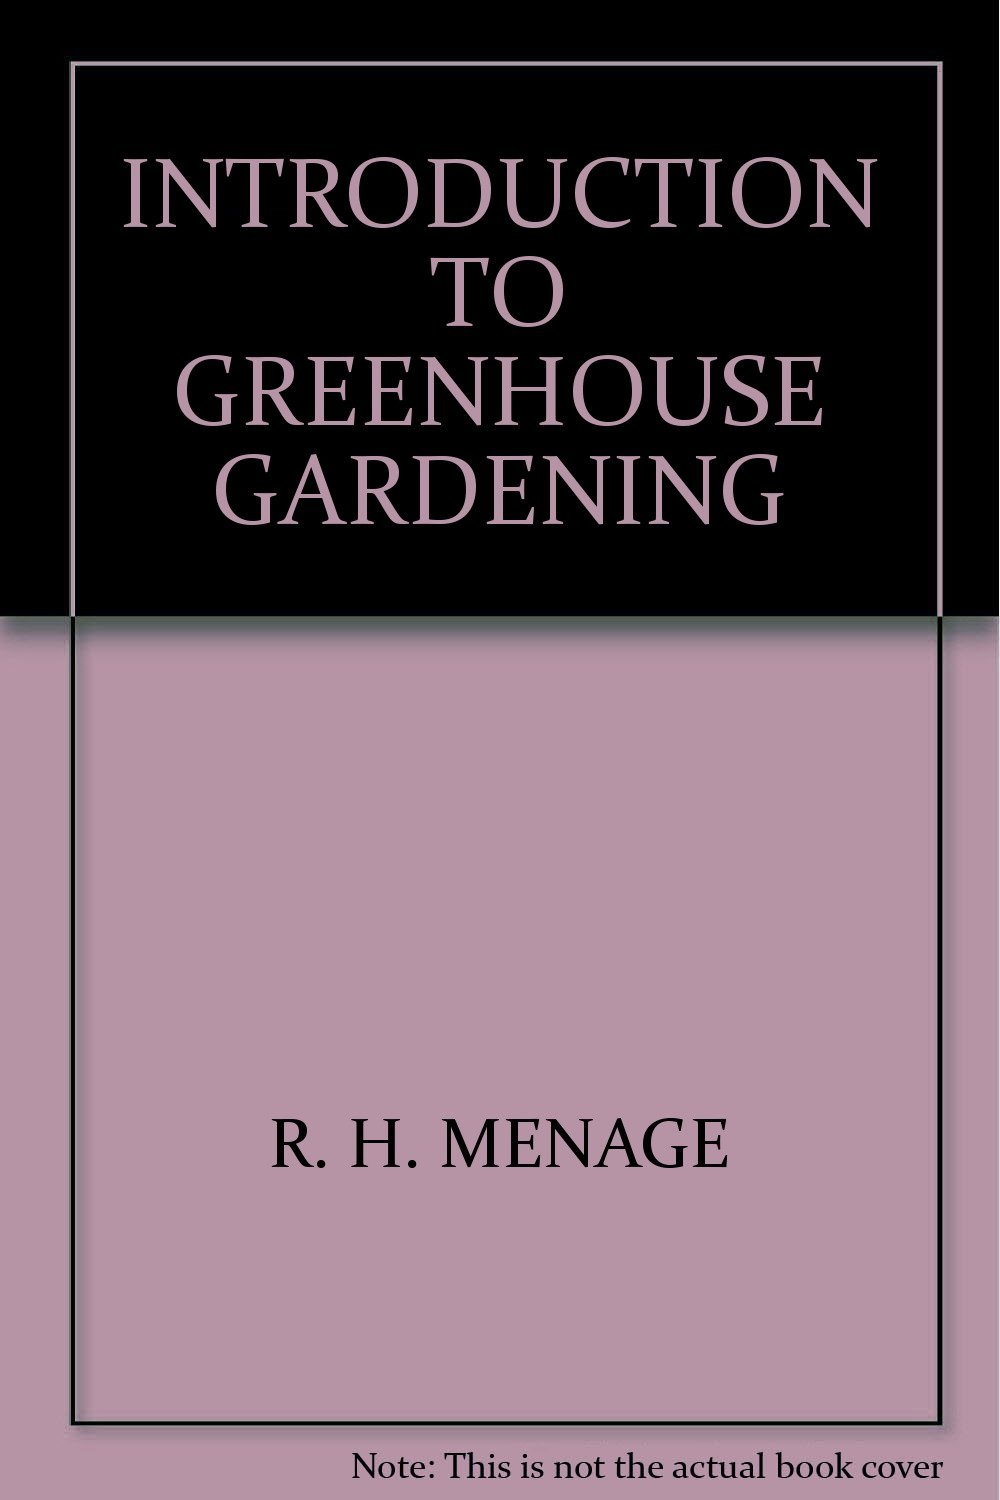 Introduction to greenhouse gardening